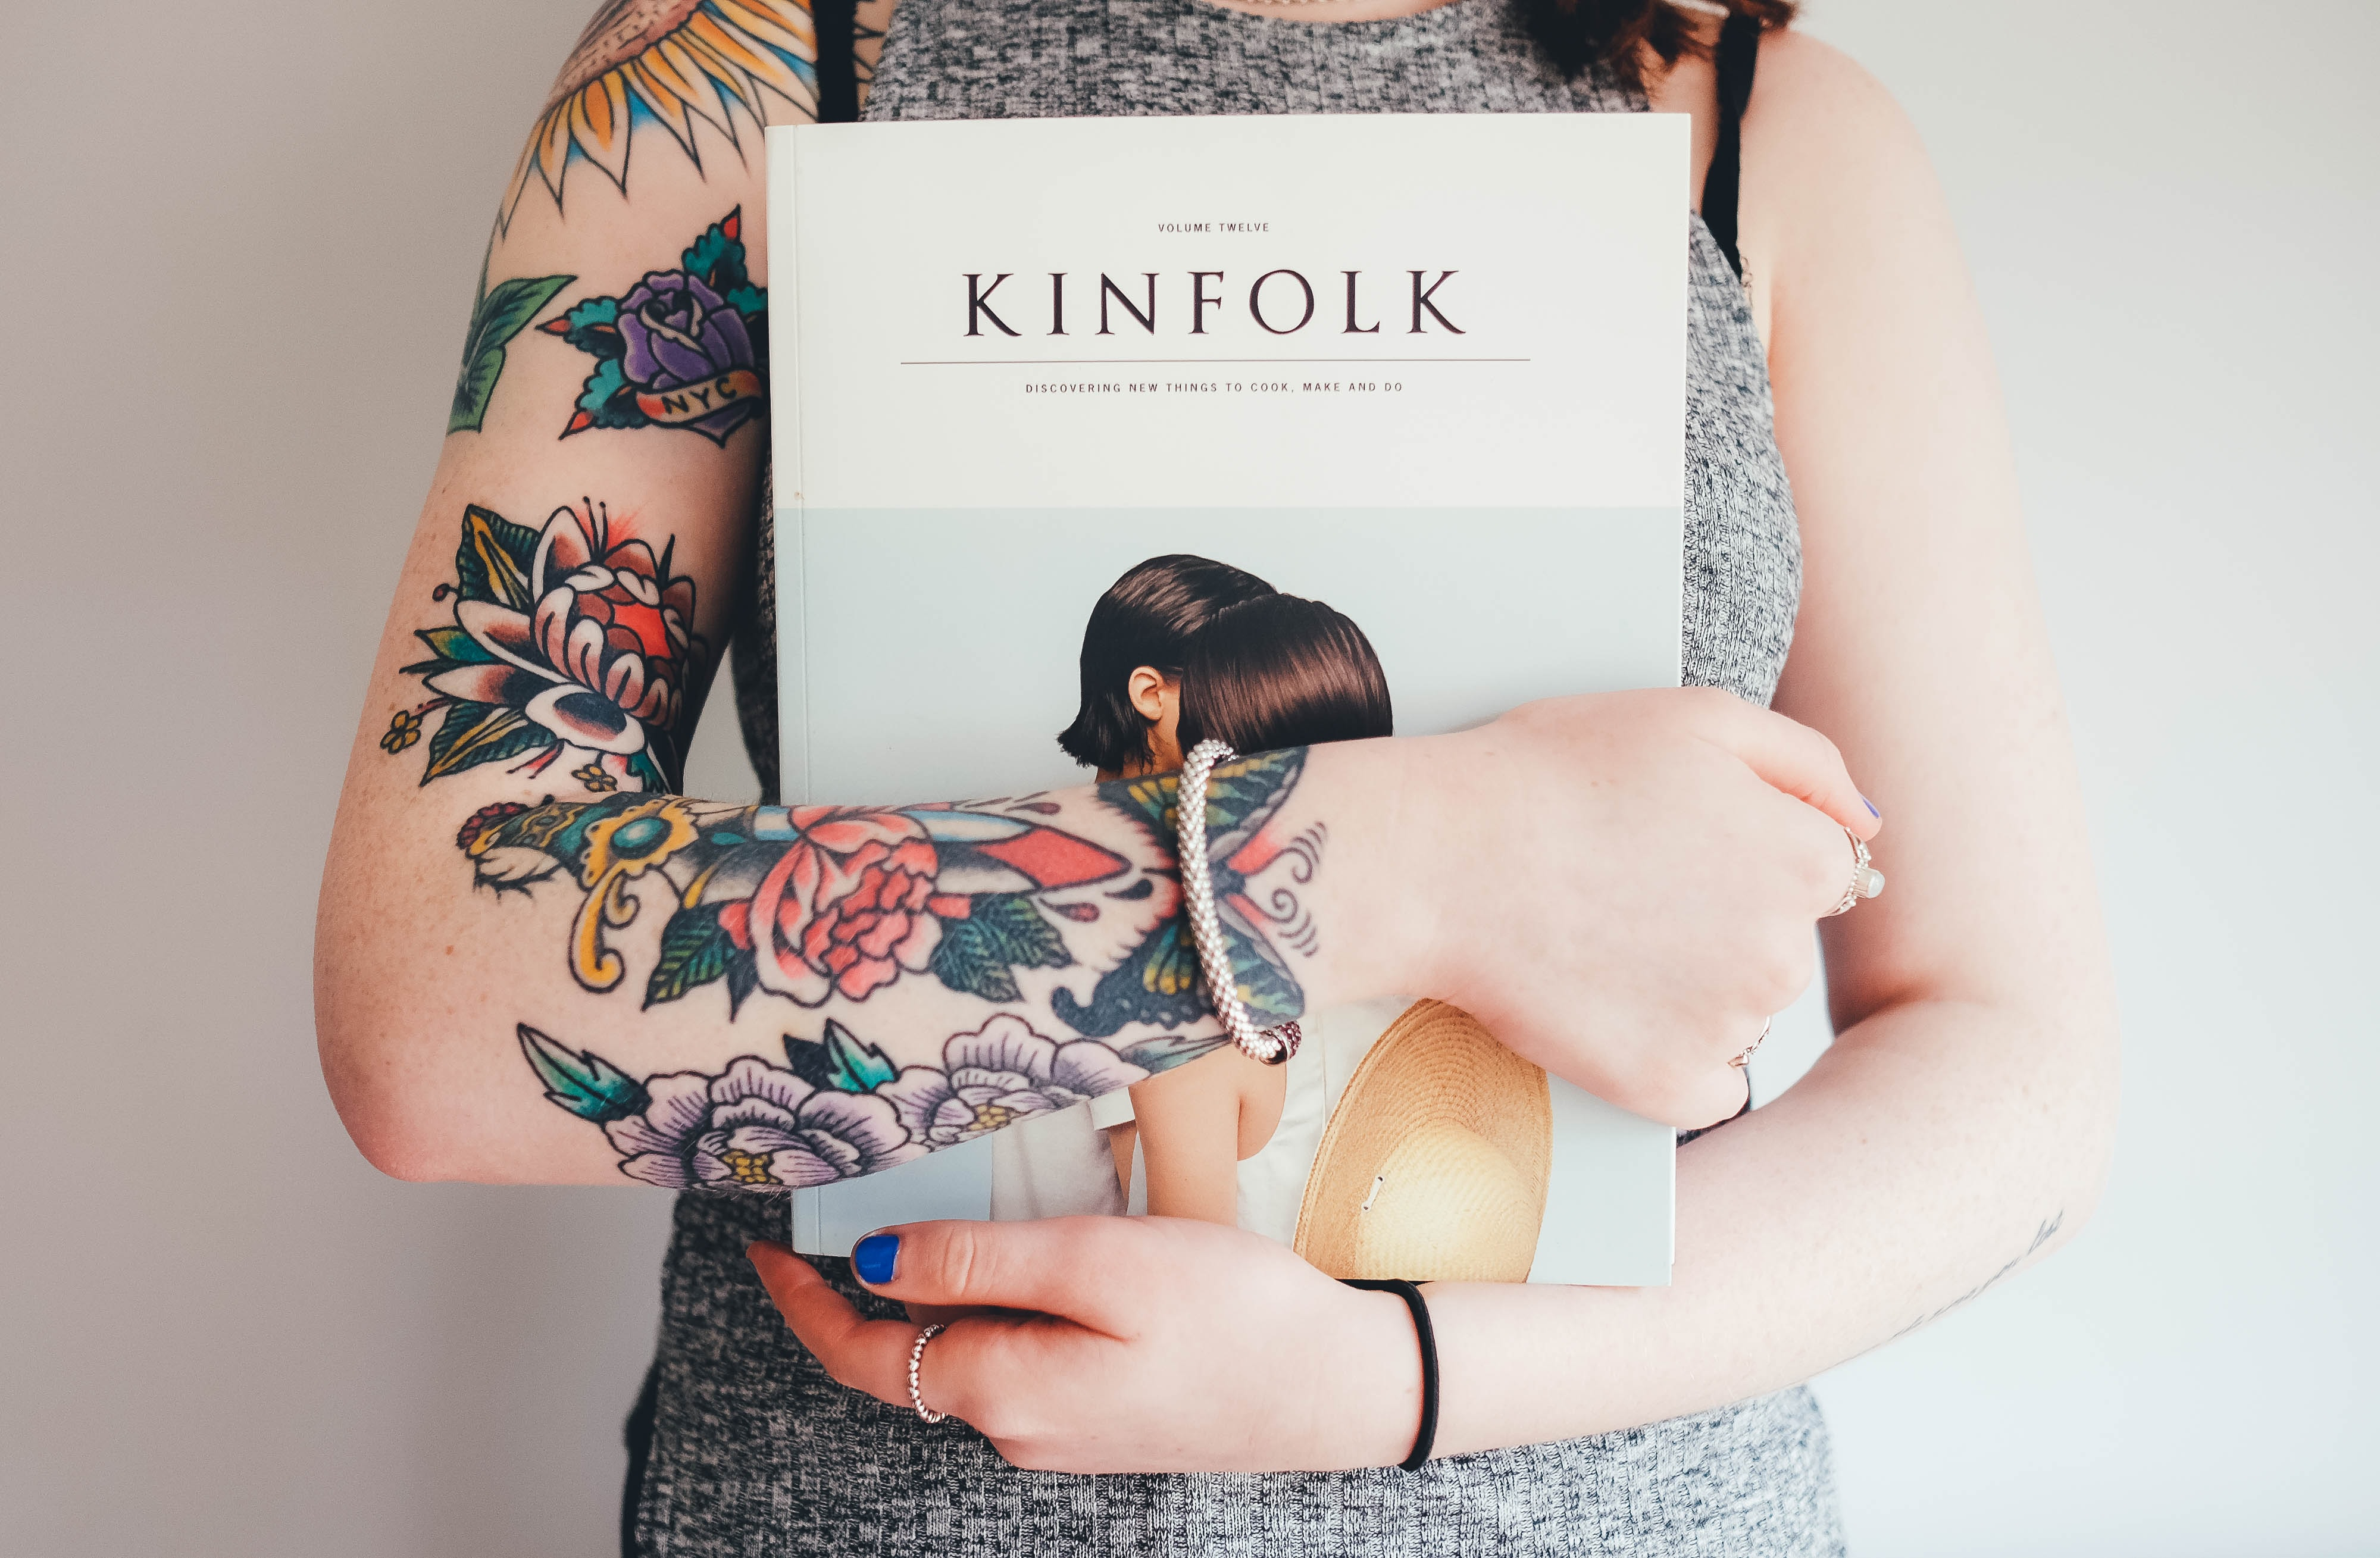 A woman with colorful floral tattoos holding a book in Southampton